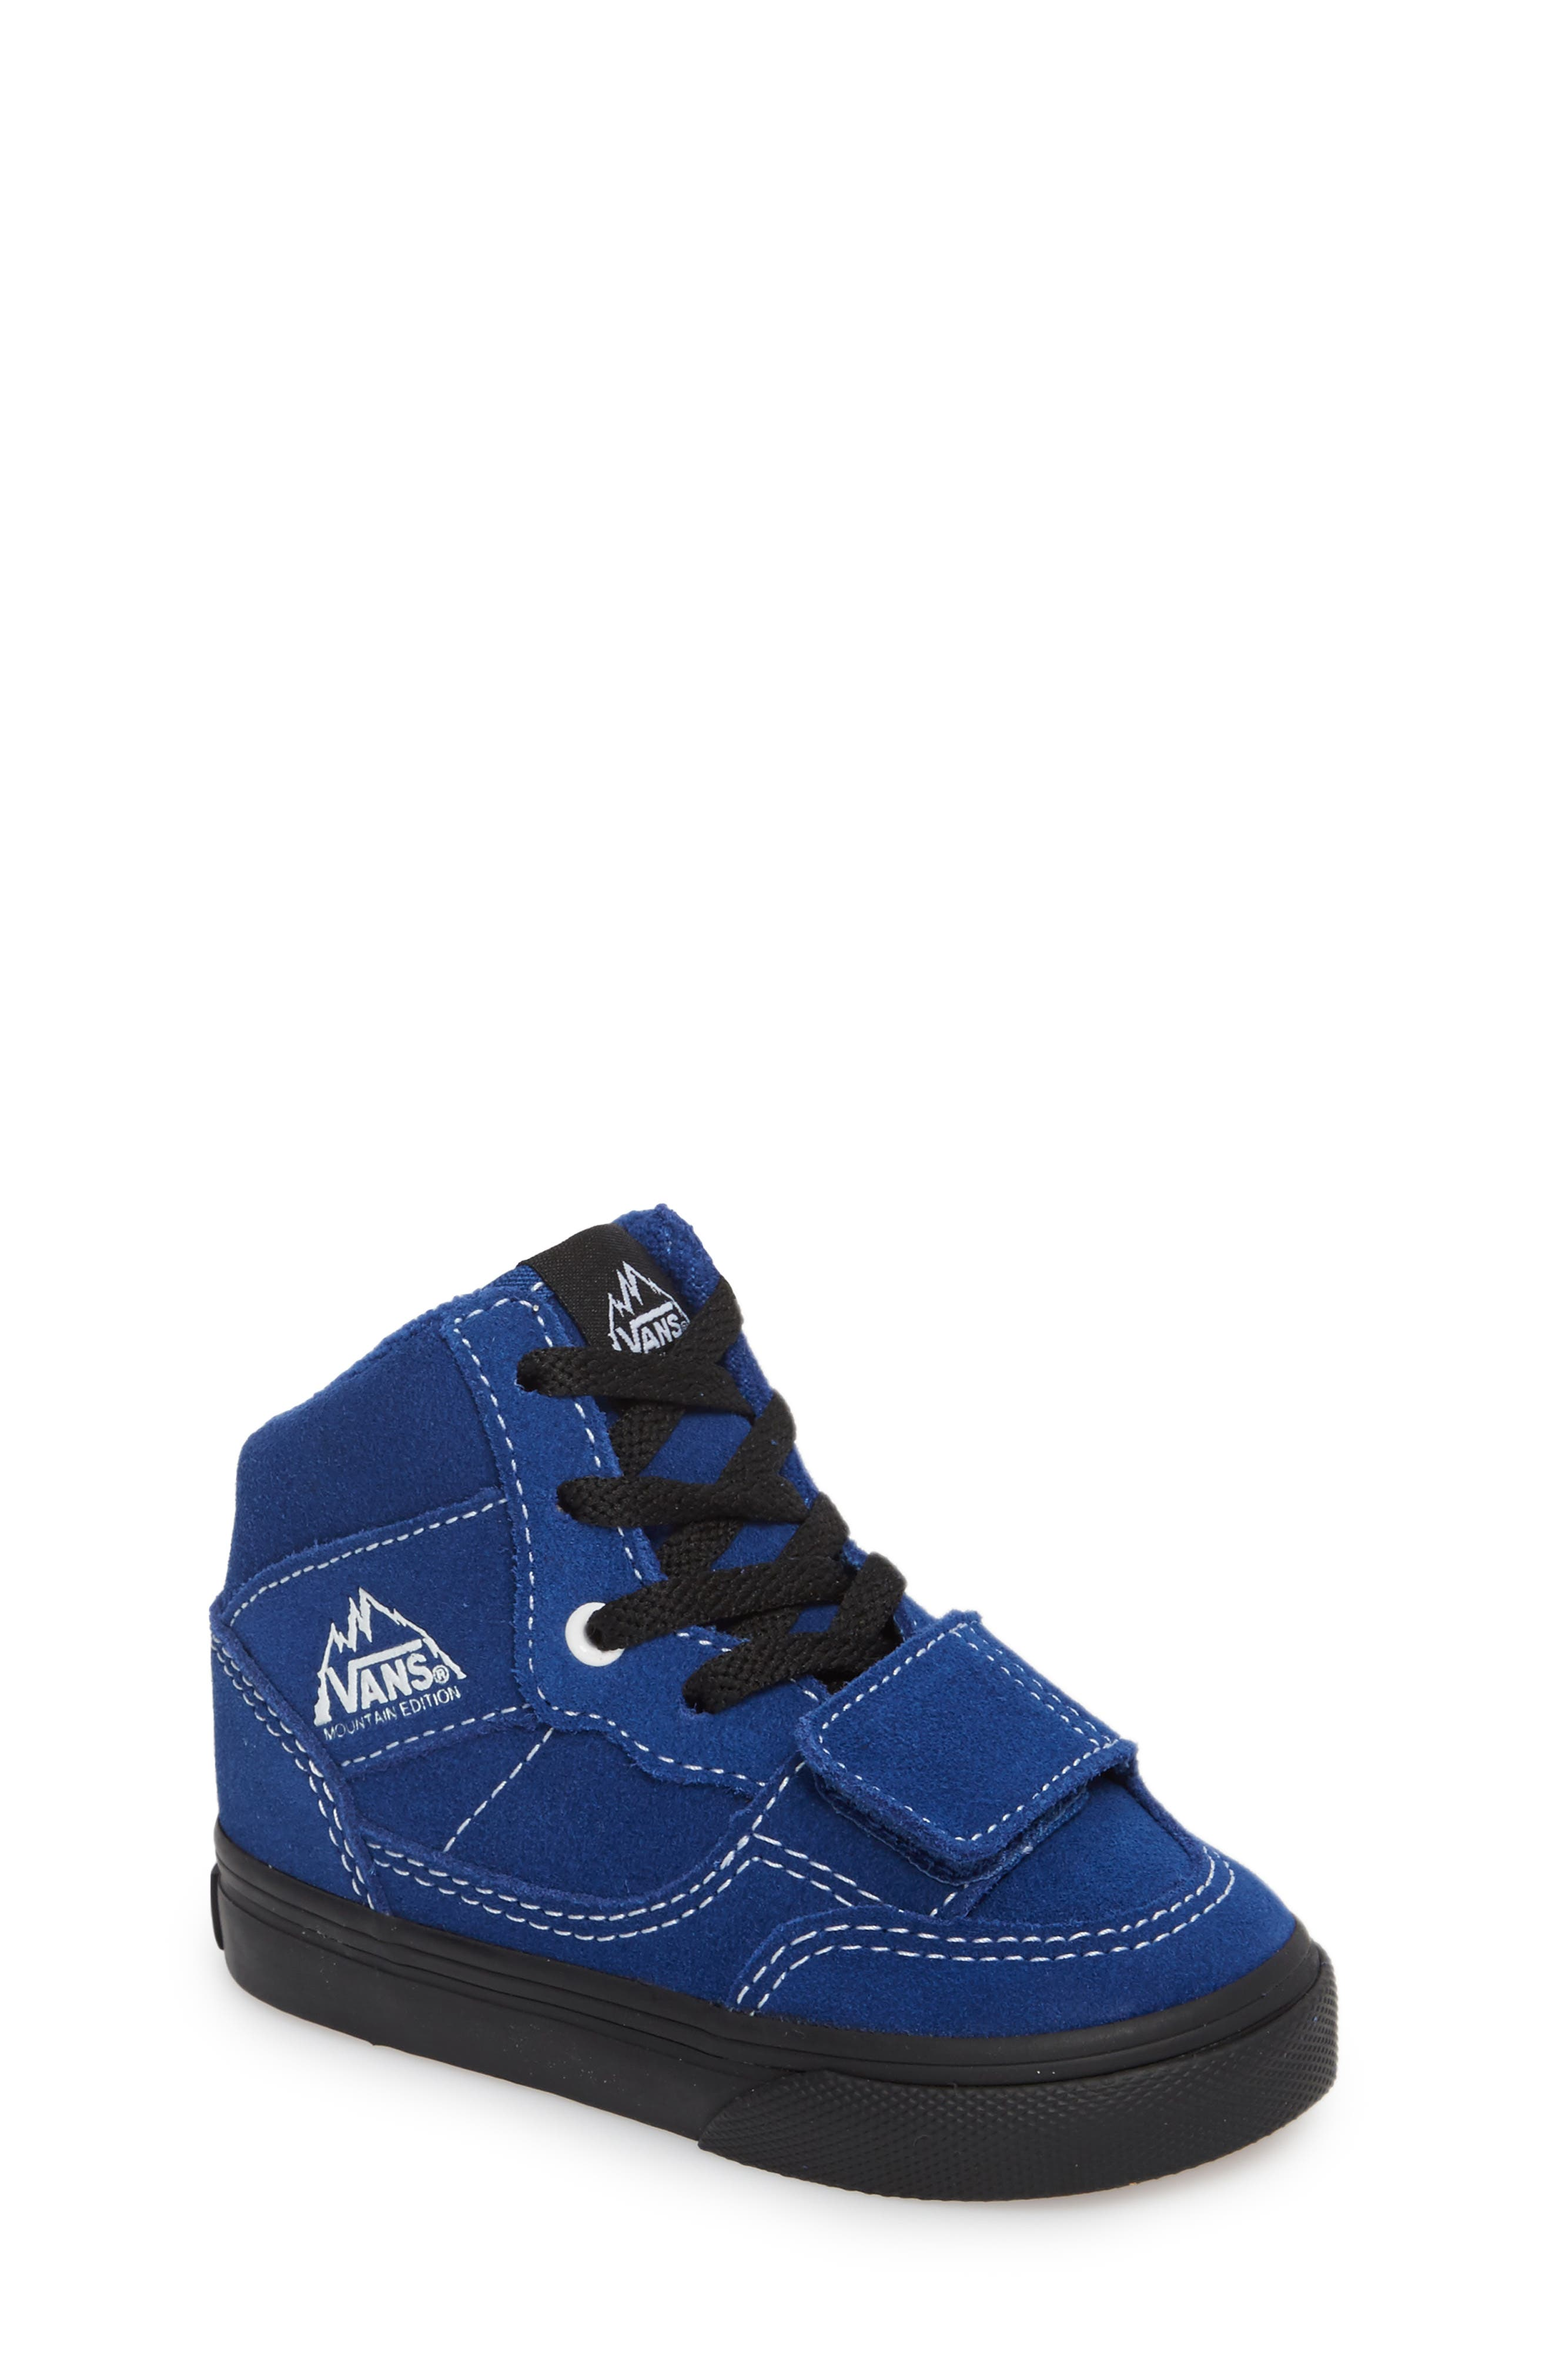 Mountain Edition Mid Top Sneaker,                         Main,                         color, Blue/ Black